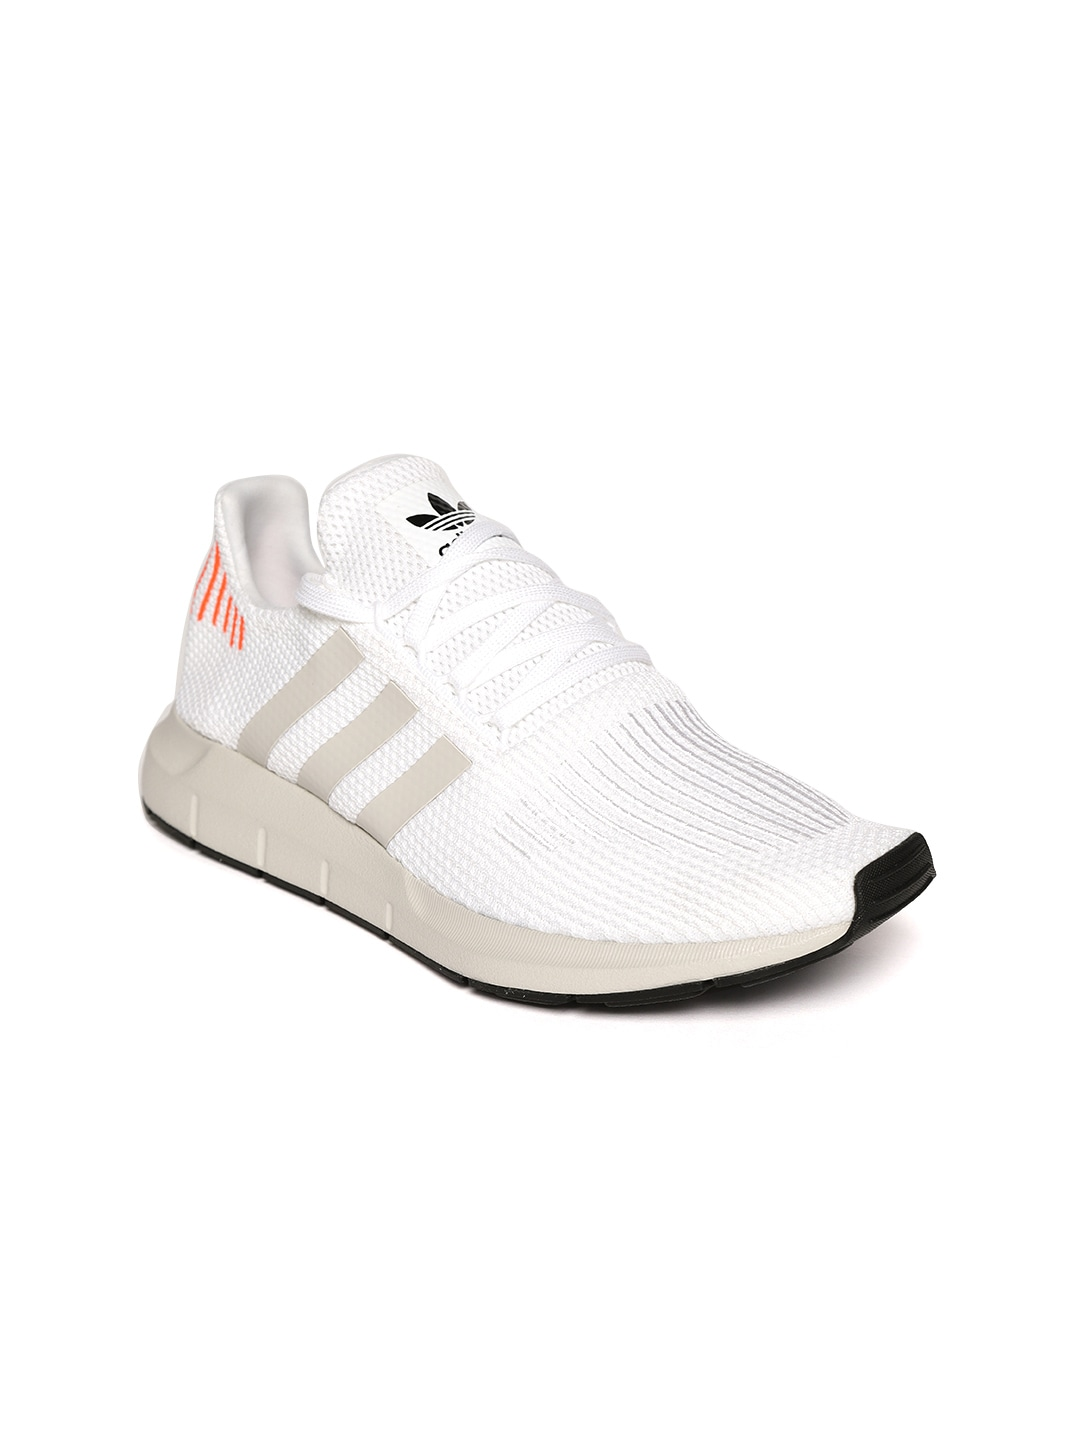 huge selection of 5a60f 79dae adidas - Exclusive adidas Online Store in India at Myntra